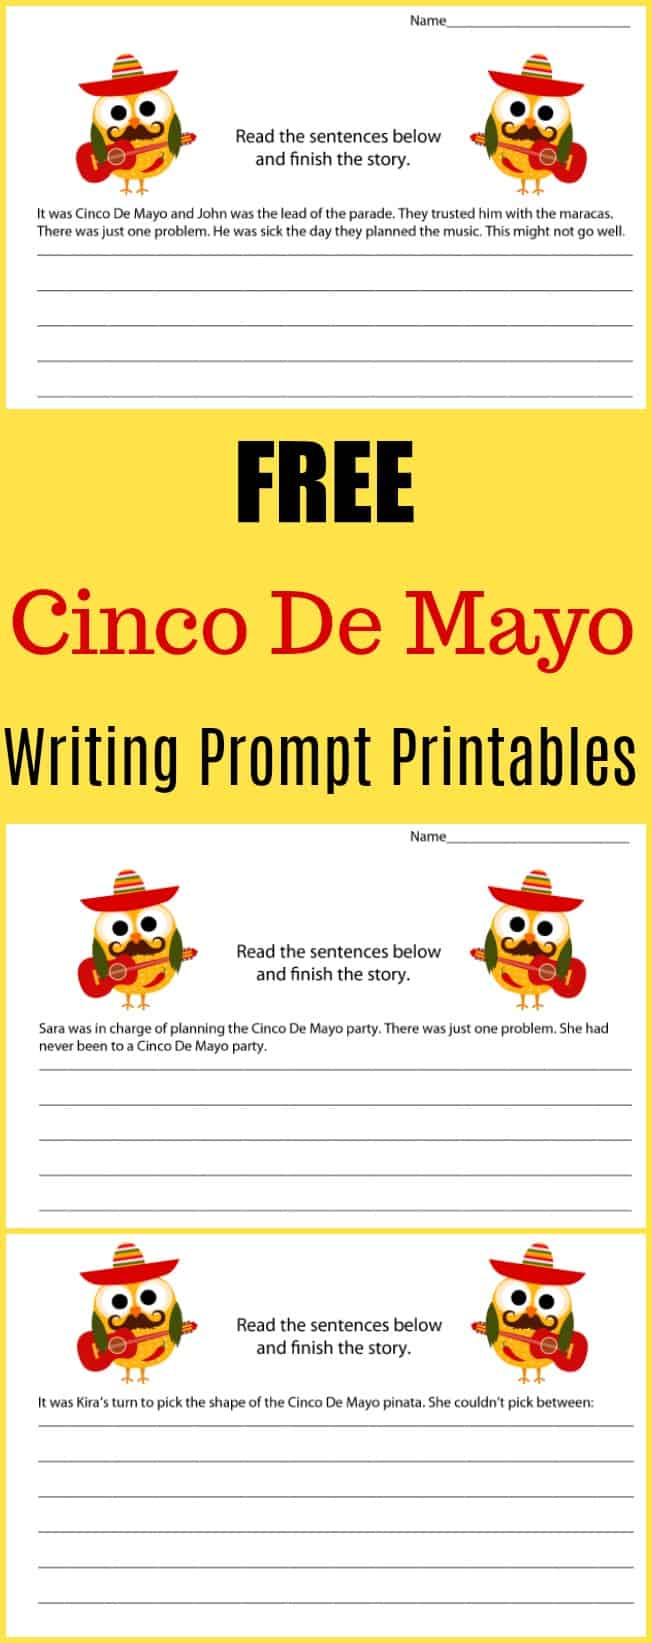 Free Cinco De Mayo Writing Prompt Printables - #writing #writingprompt #holiday #printable #freeprintable #education #edchat #homeschool #homeschooling #cincodemayo